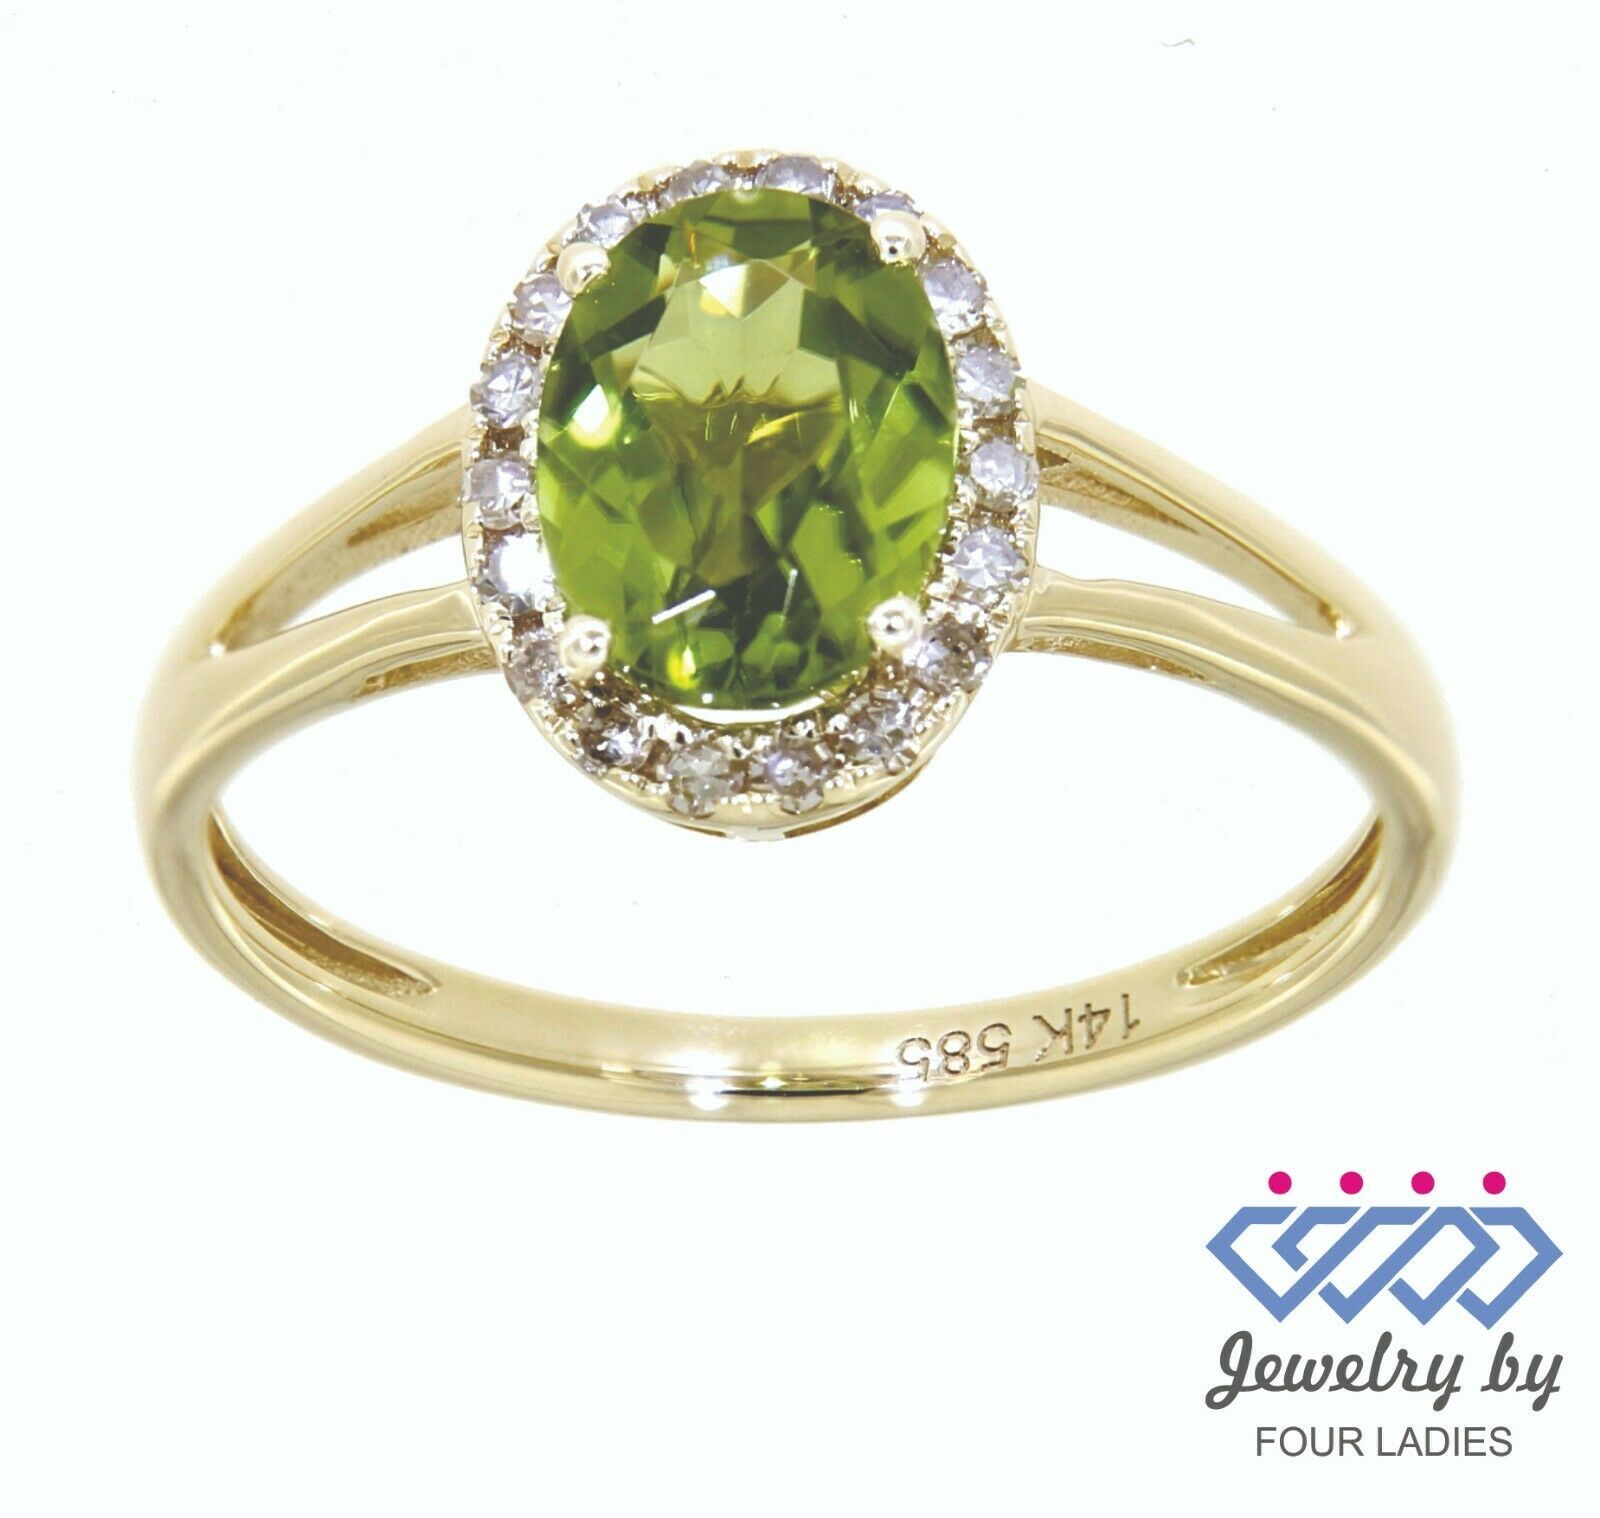 Primary image for Peridot Gemstone 14K Yellow Gold 1.32CT Real Natural Halo Diamond Ring